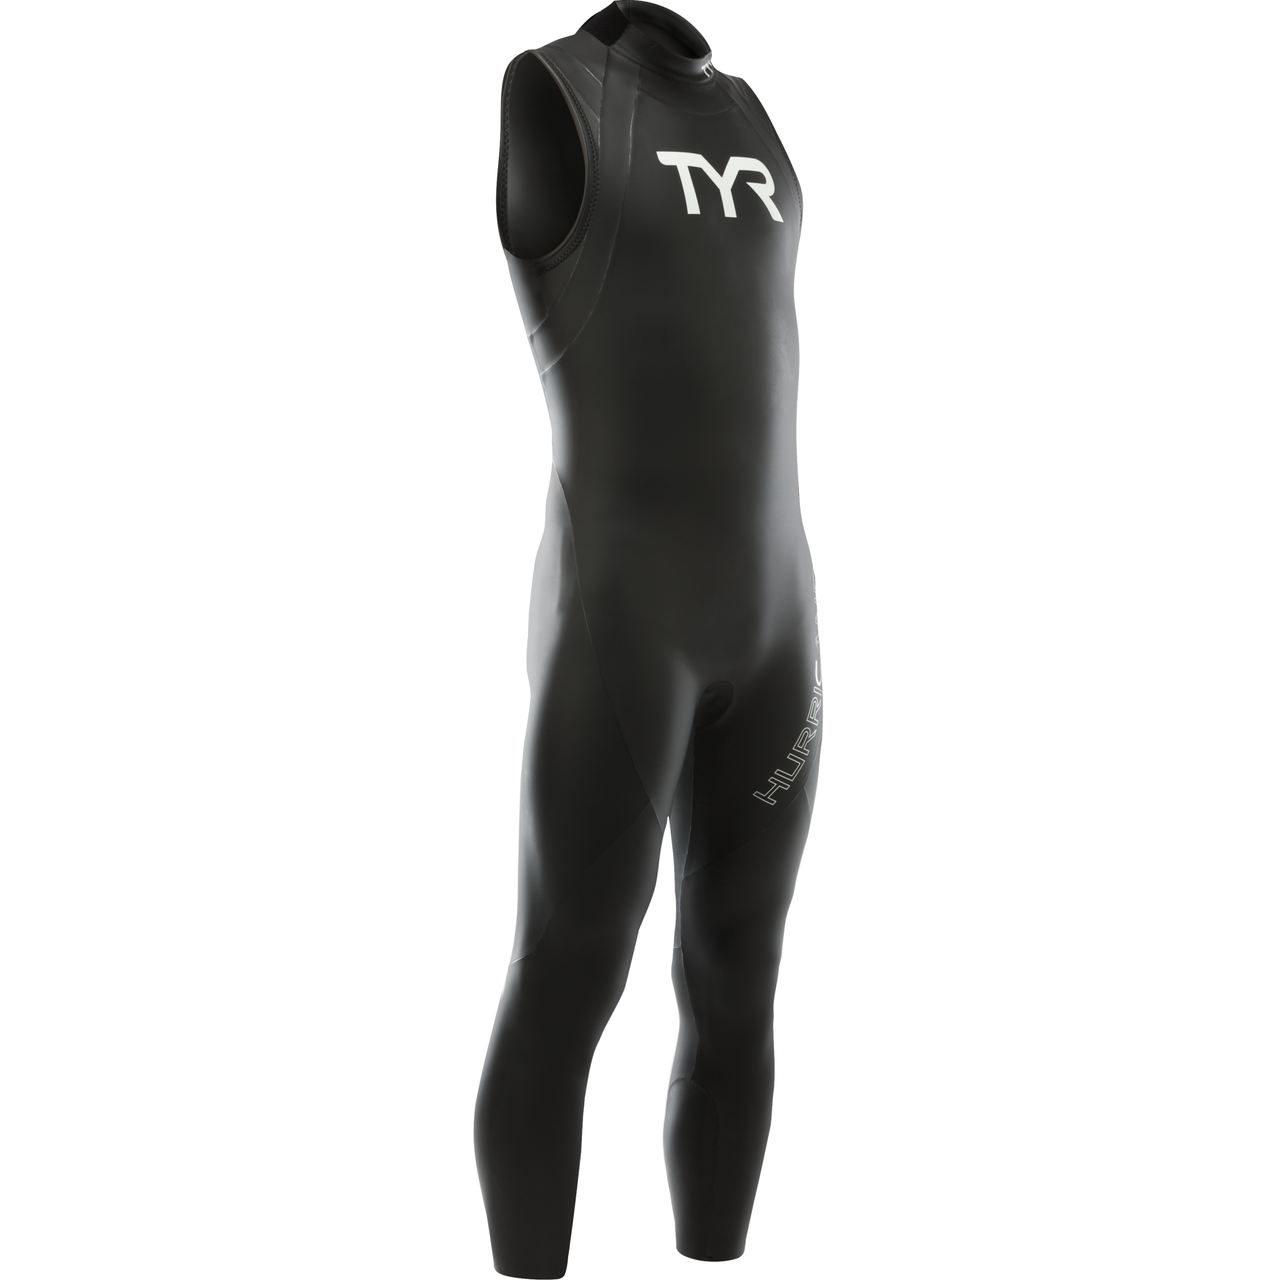 332c3a14ab98a REPAIRED  TYR Men s Hurricane Category 1 Sleeveless Wetsuit - 2018 - Size  M L - Triathlete Sports